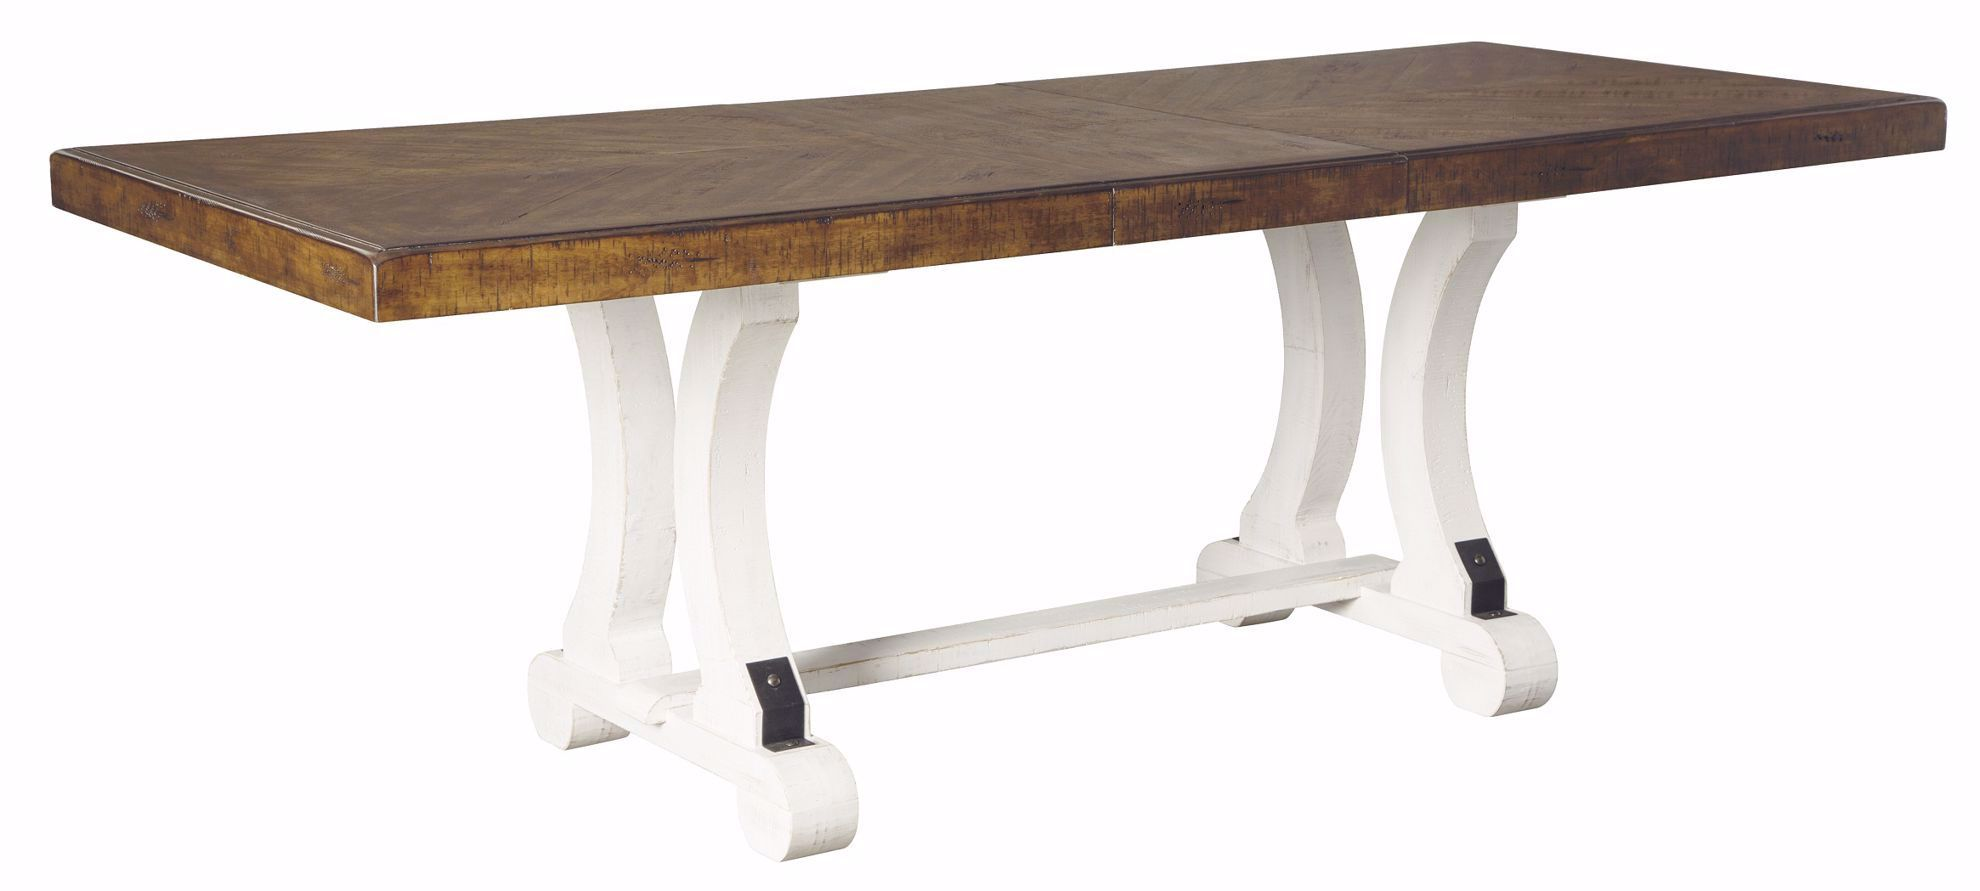 Picture of Valebeck Dining Table with Extension